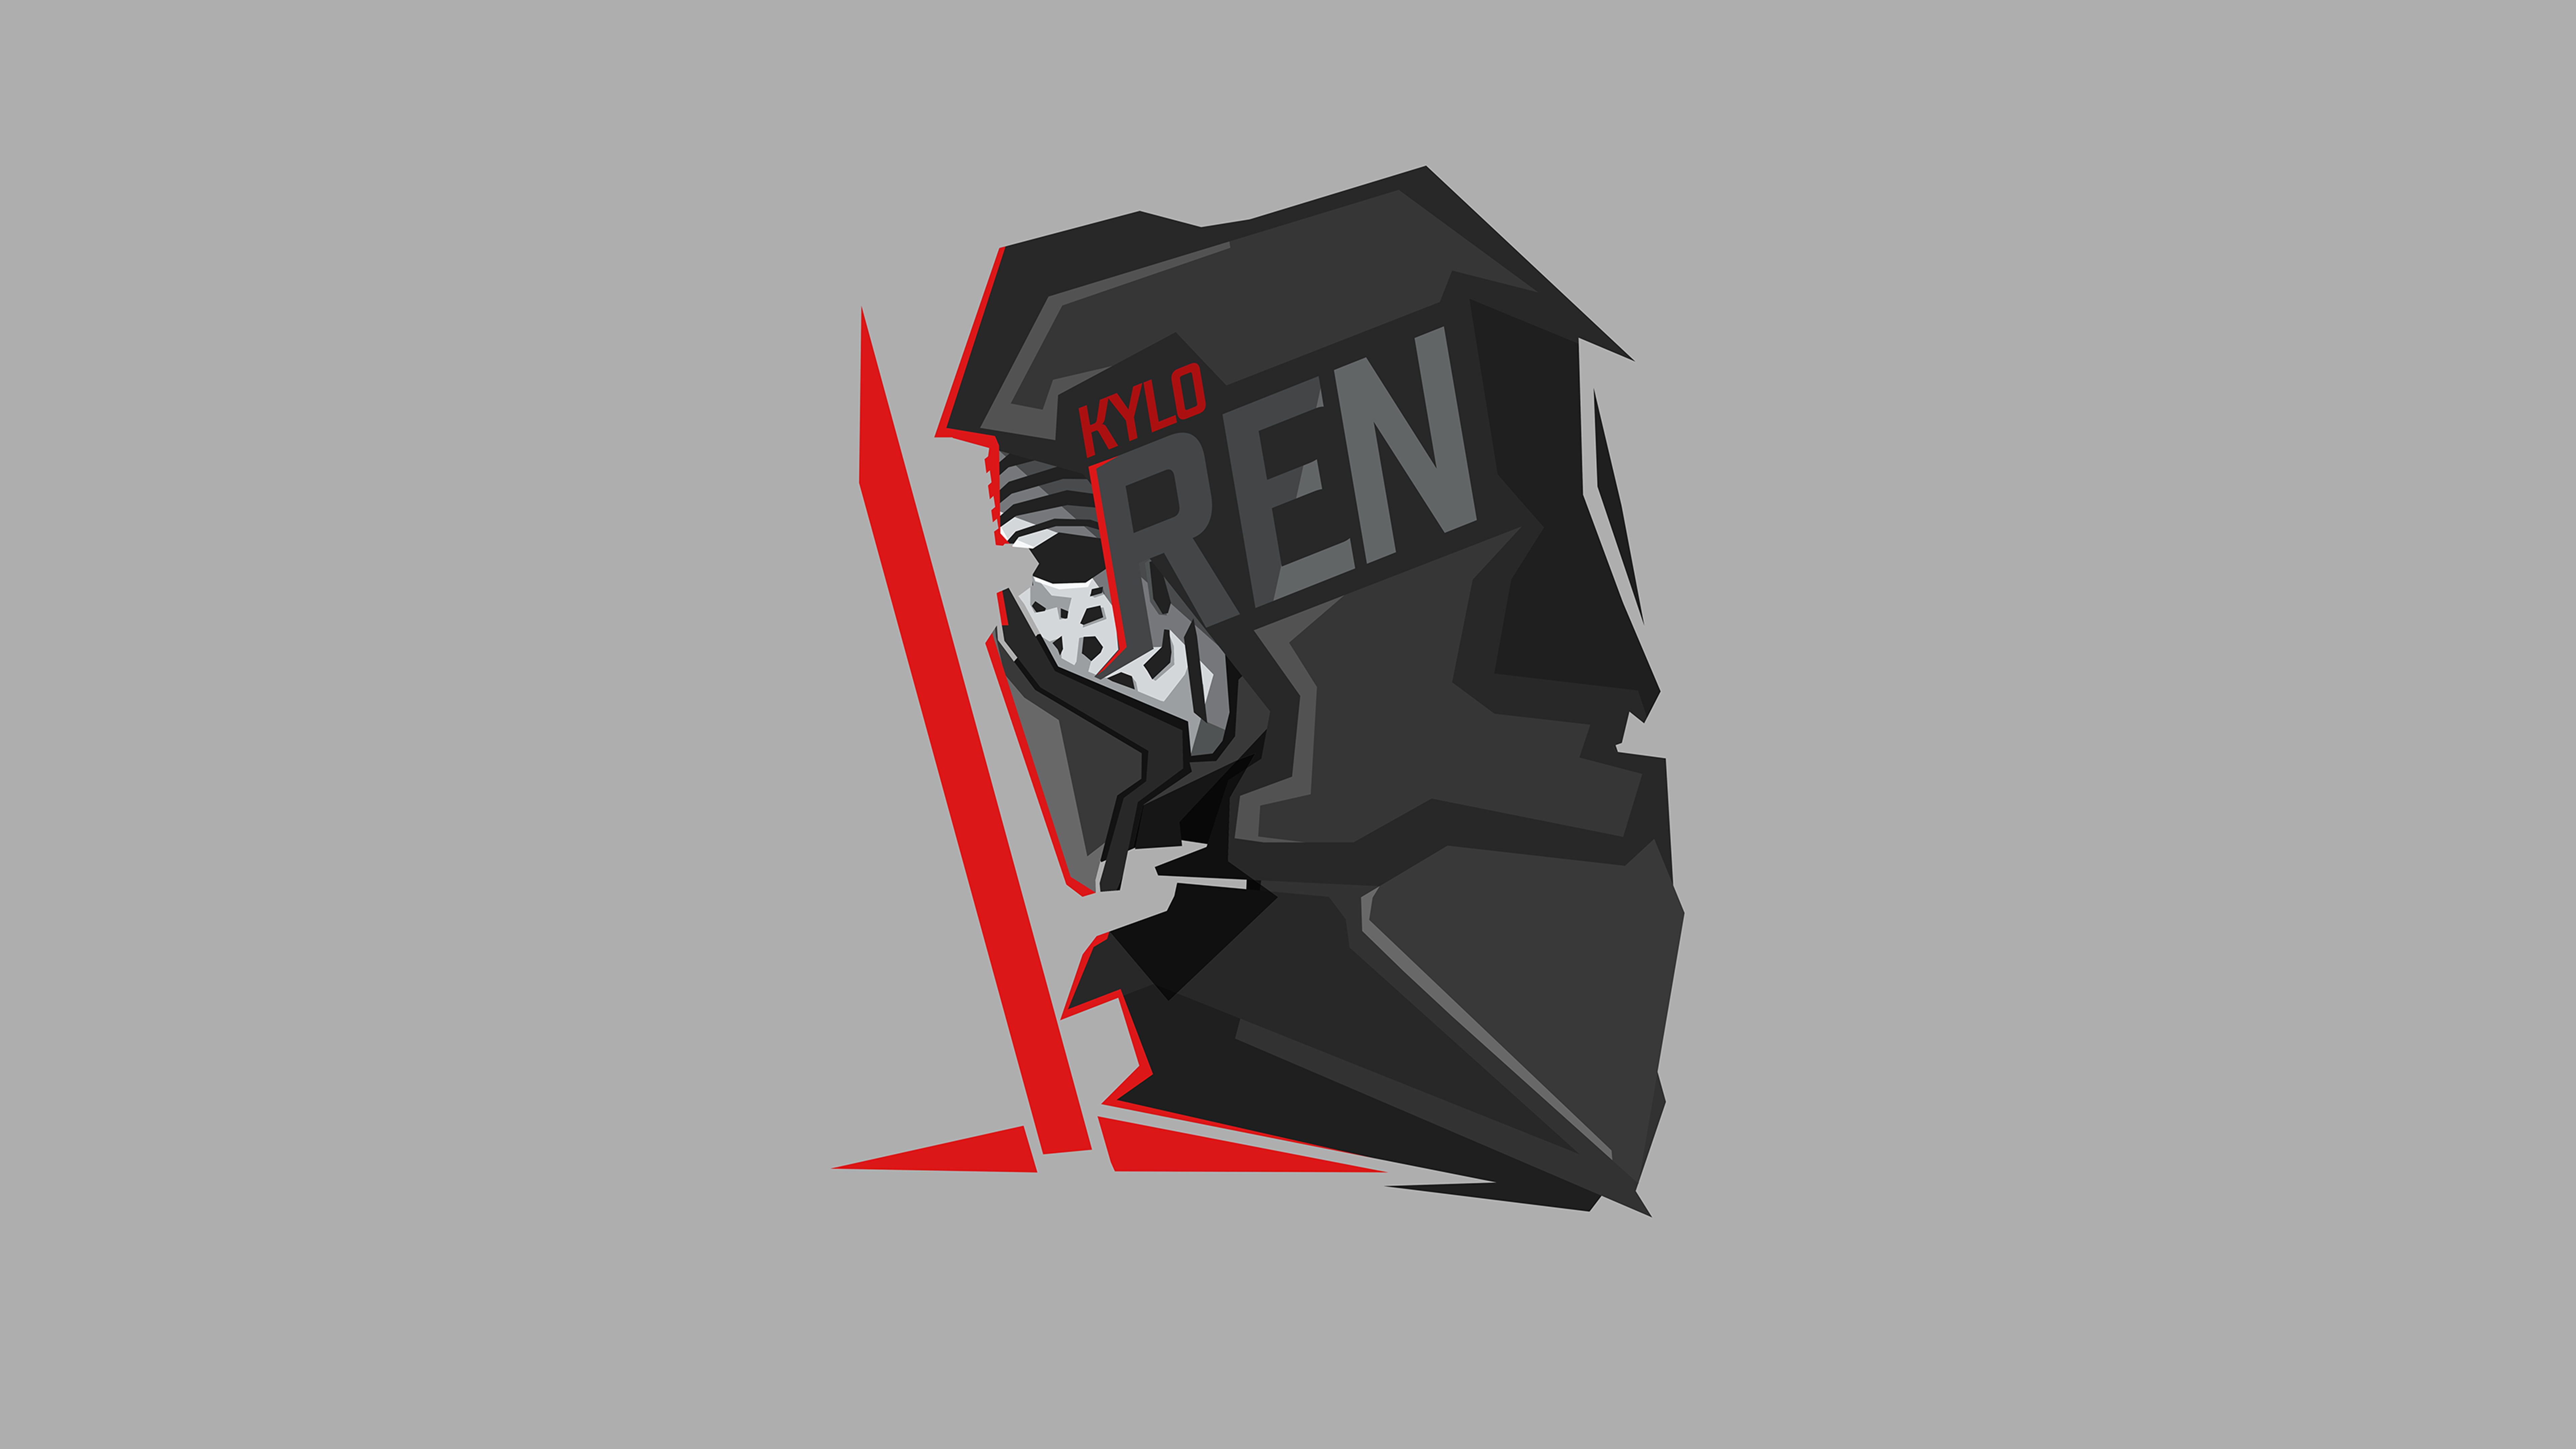 Wallpaper Kylo Ren Star Wars Illustration